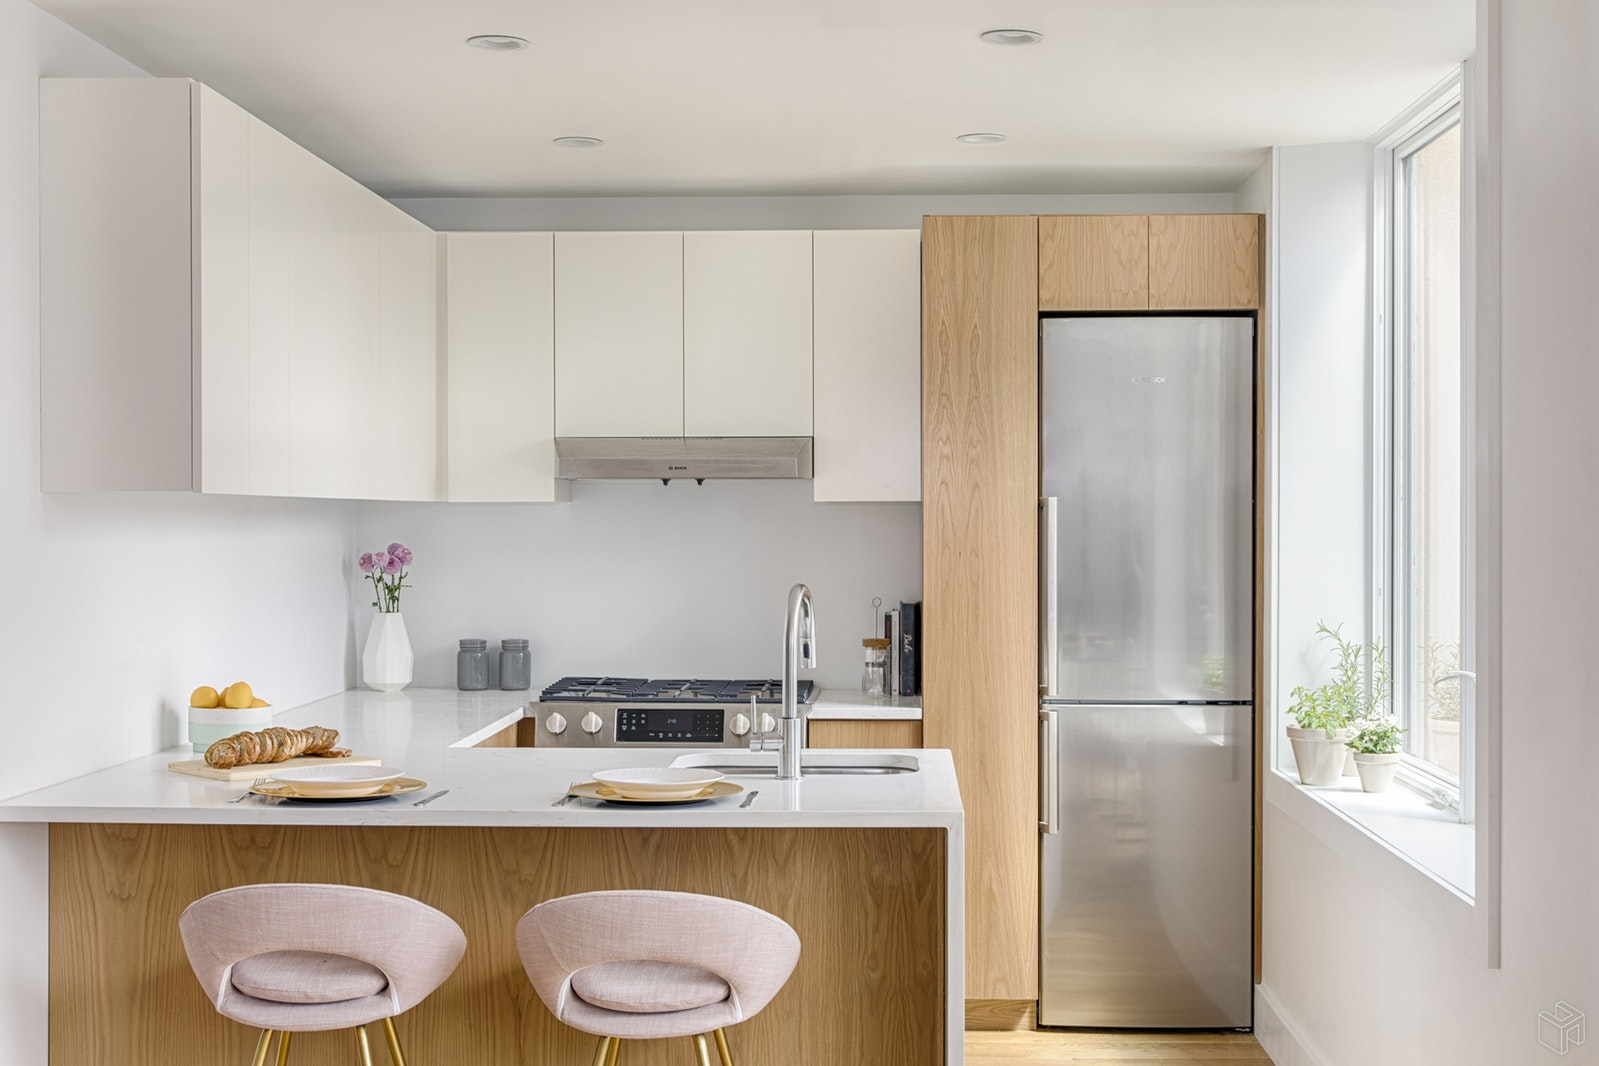 34 Conselyea Street  4, Williamsburg, Brooklyn, NY, 11211, $899,000, Property For Sale, ID# 18432429, Halstead